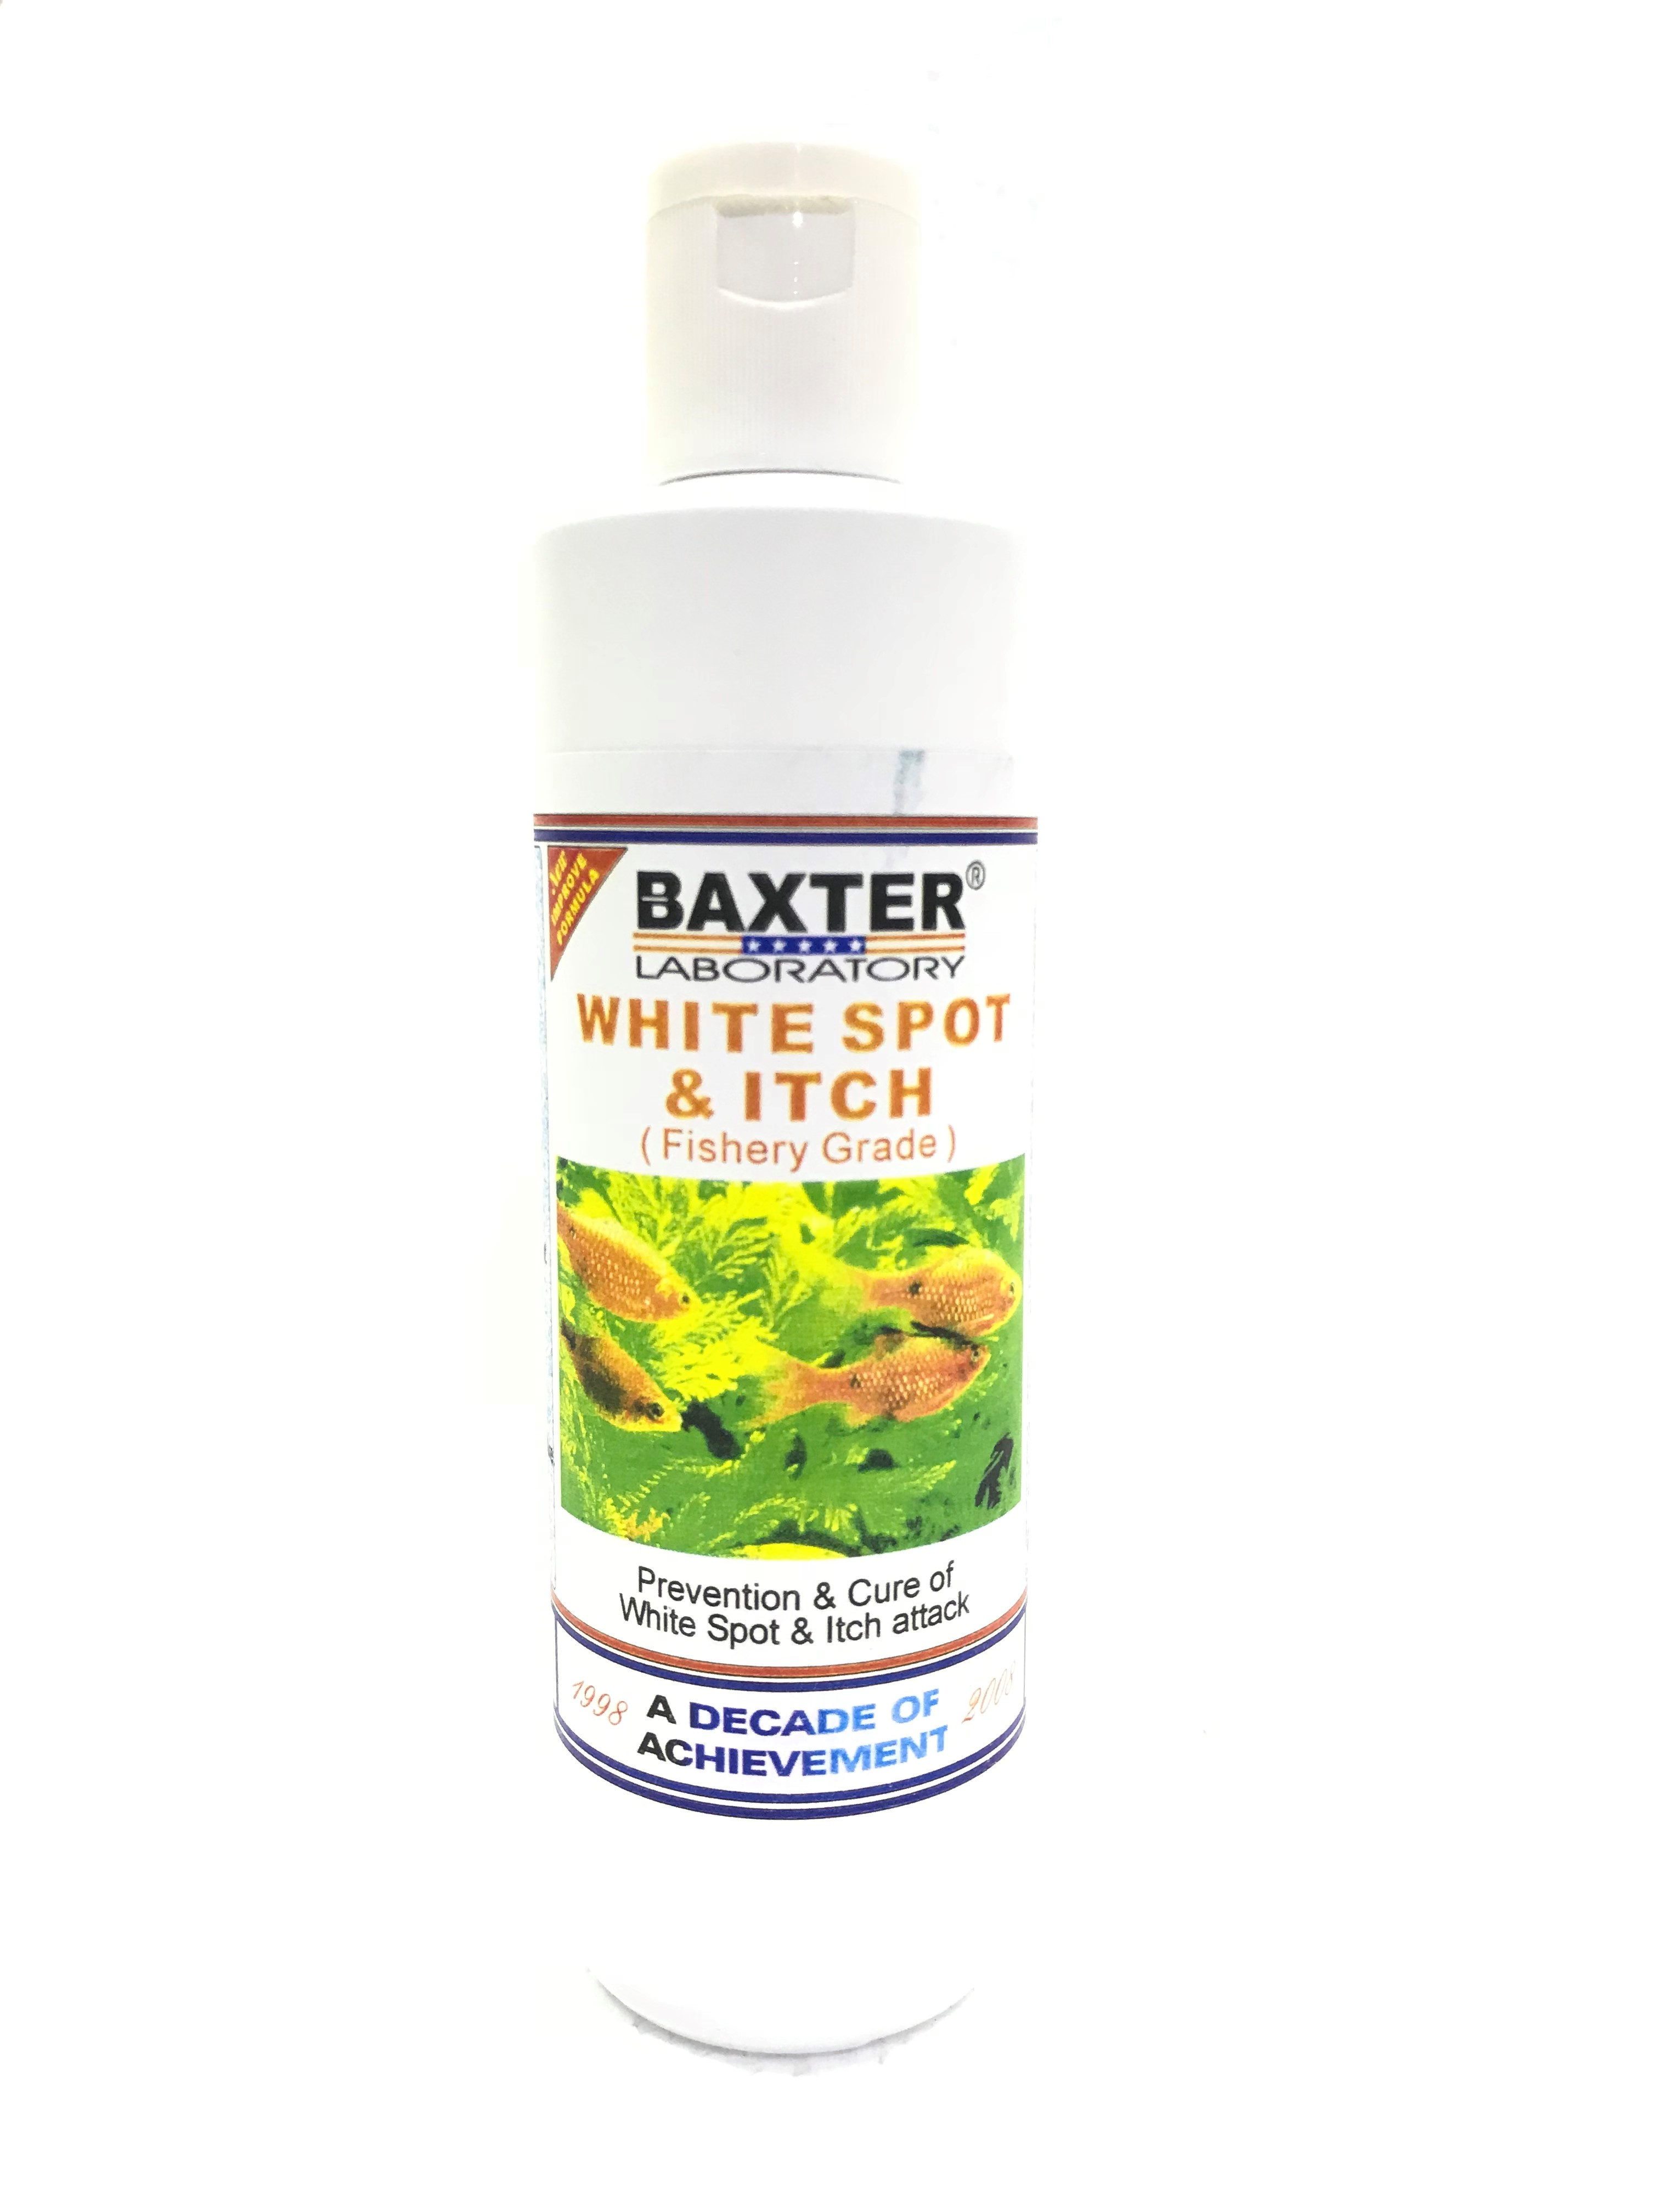 Baxter White Spot And Itch (Fishery Grade)